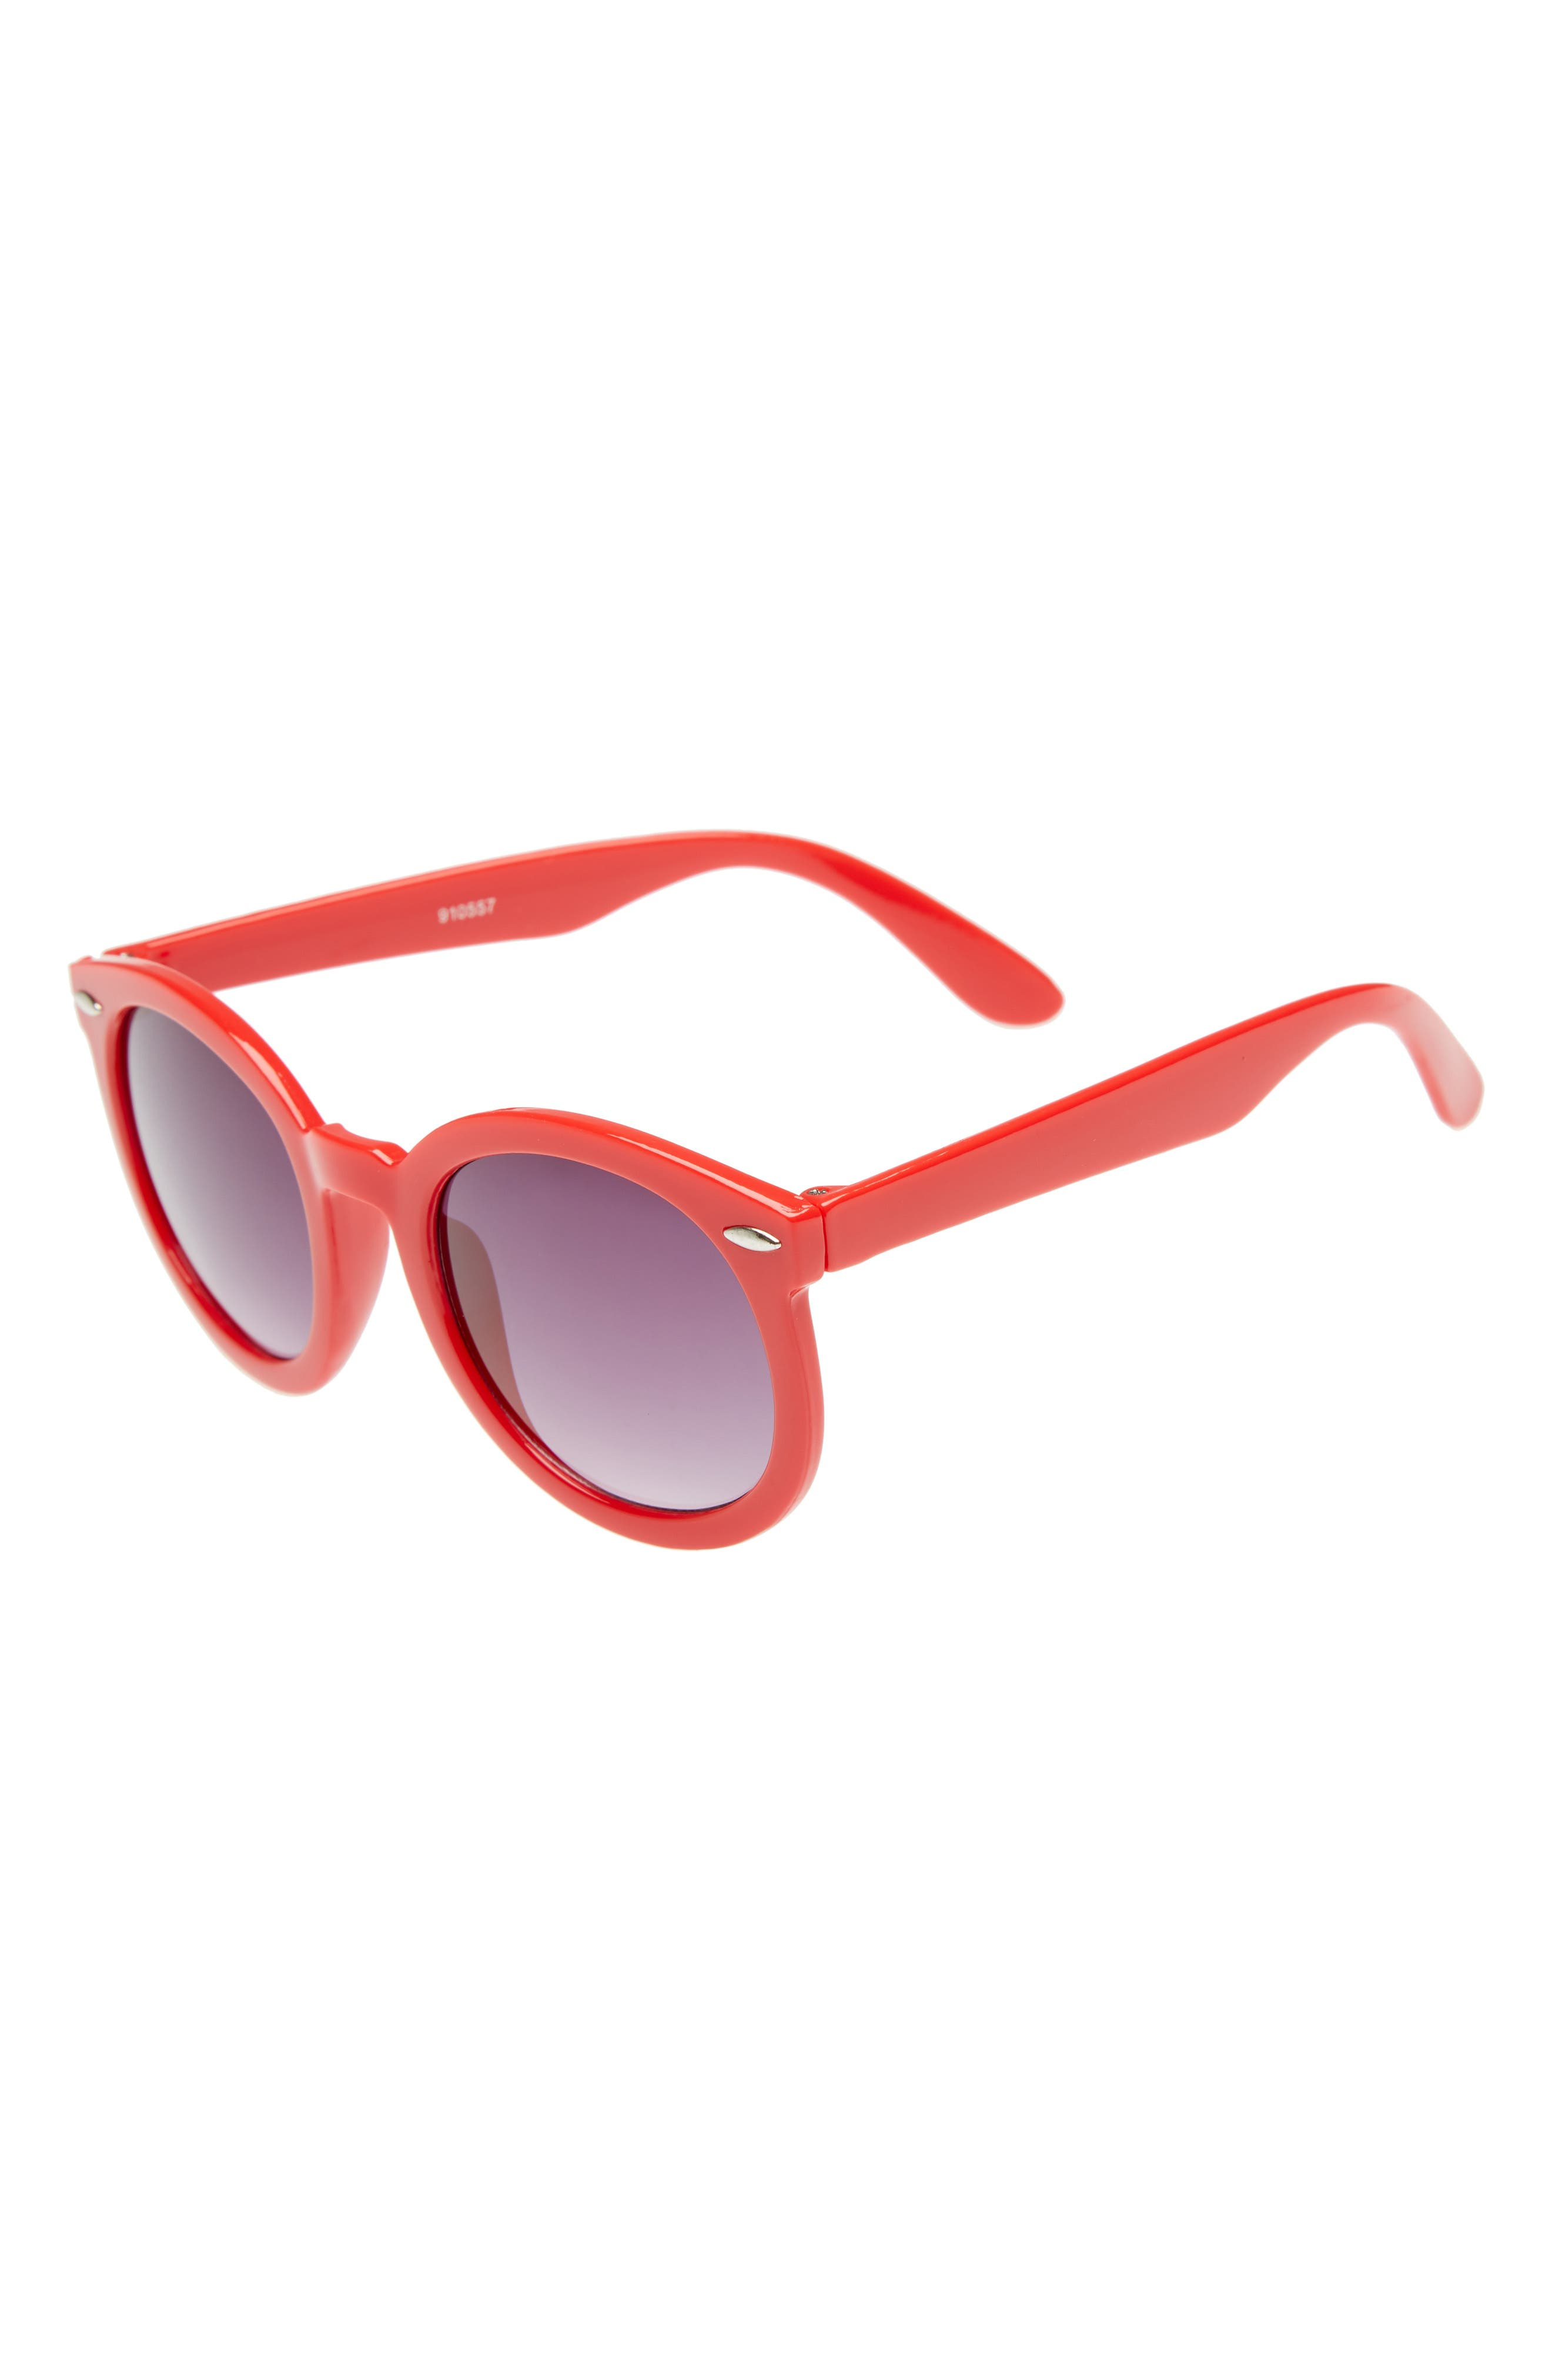 Round Sunglasses,                             Main thumbnail 1, color,                             Red